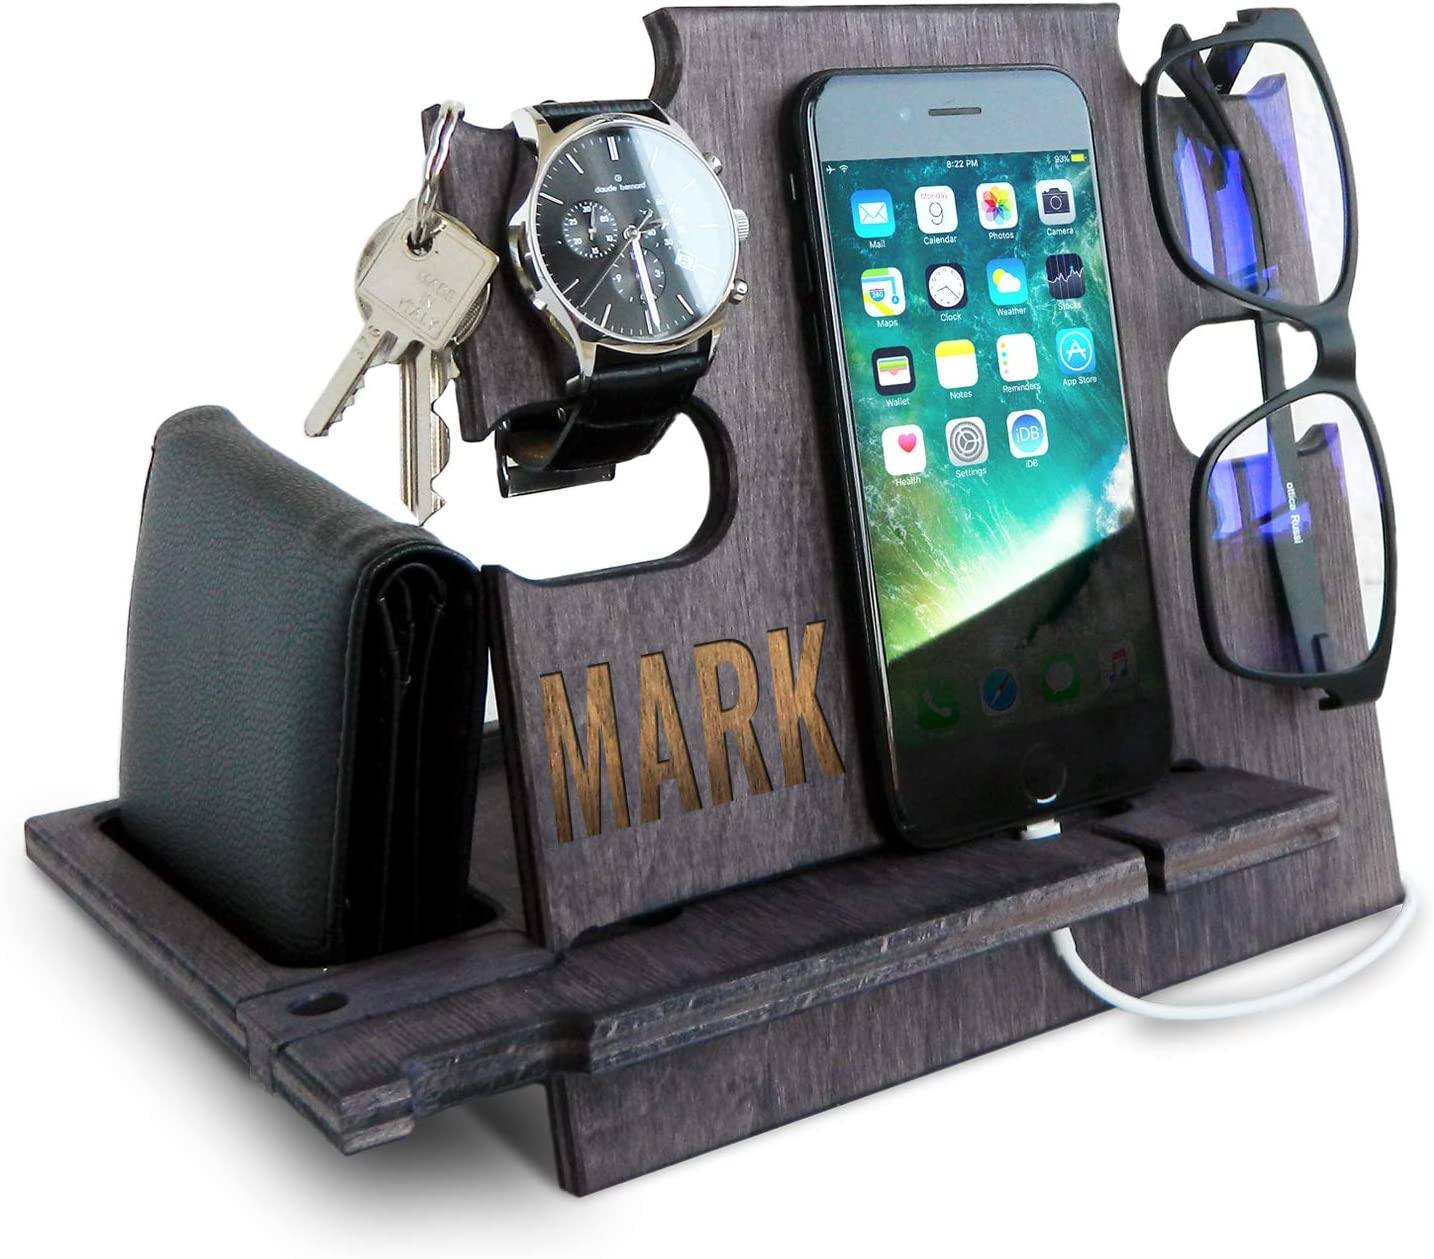 Personalized Gifts for Men, Cell Phone Stand, Wooden Desk Organizer, Phone Dock - Nightstand Charging Station, Phone Holder, Gift Ideas for Christmas, Birthday, Anniversary (Slate Gray)